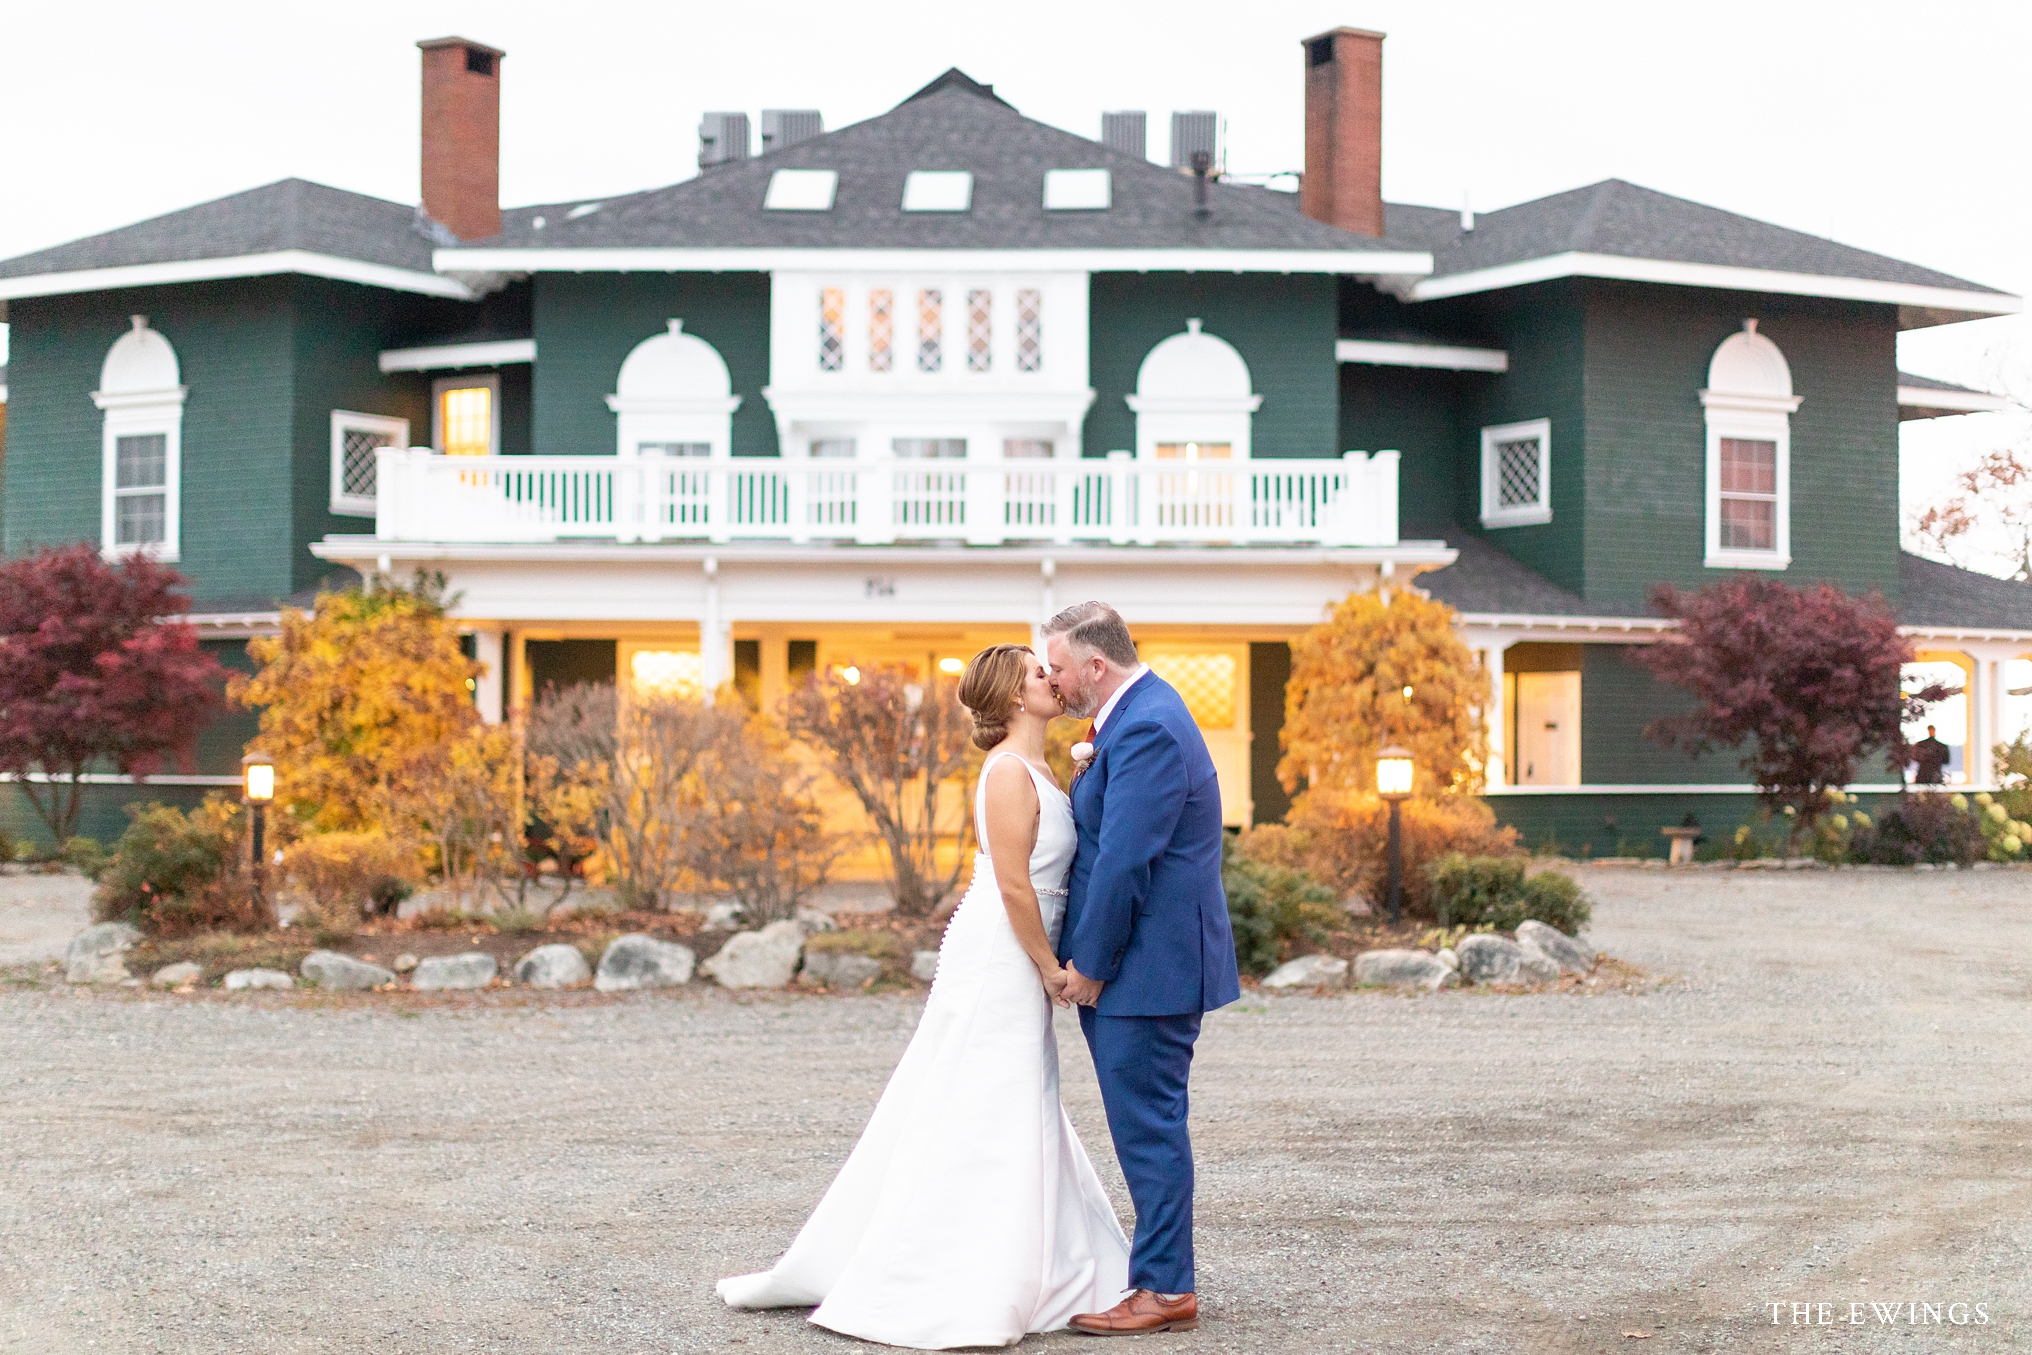 A coastal Maine destination weekend wedding venue at Frenchs Point in Stockton Springs Maine features a cliffside mansion overlooking Penobscot Bay.